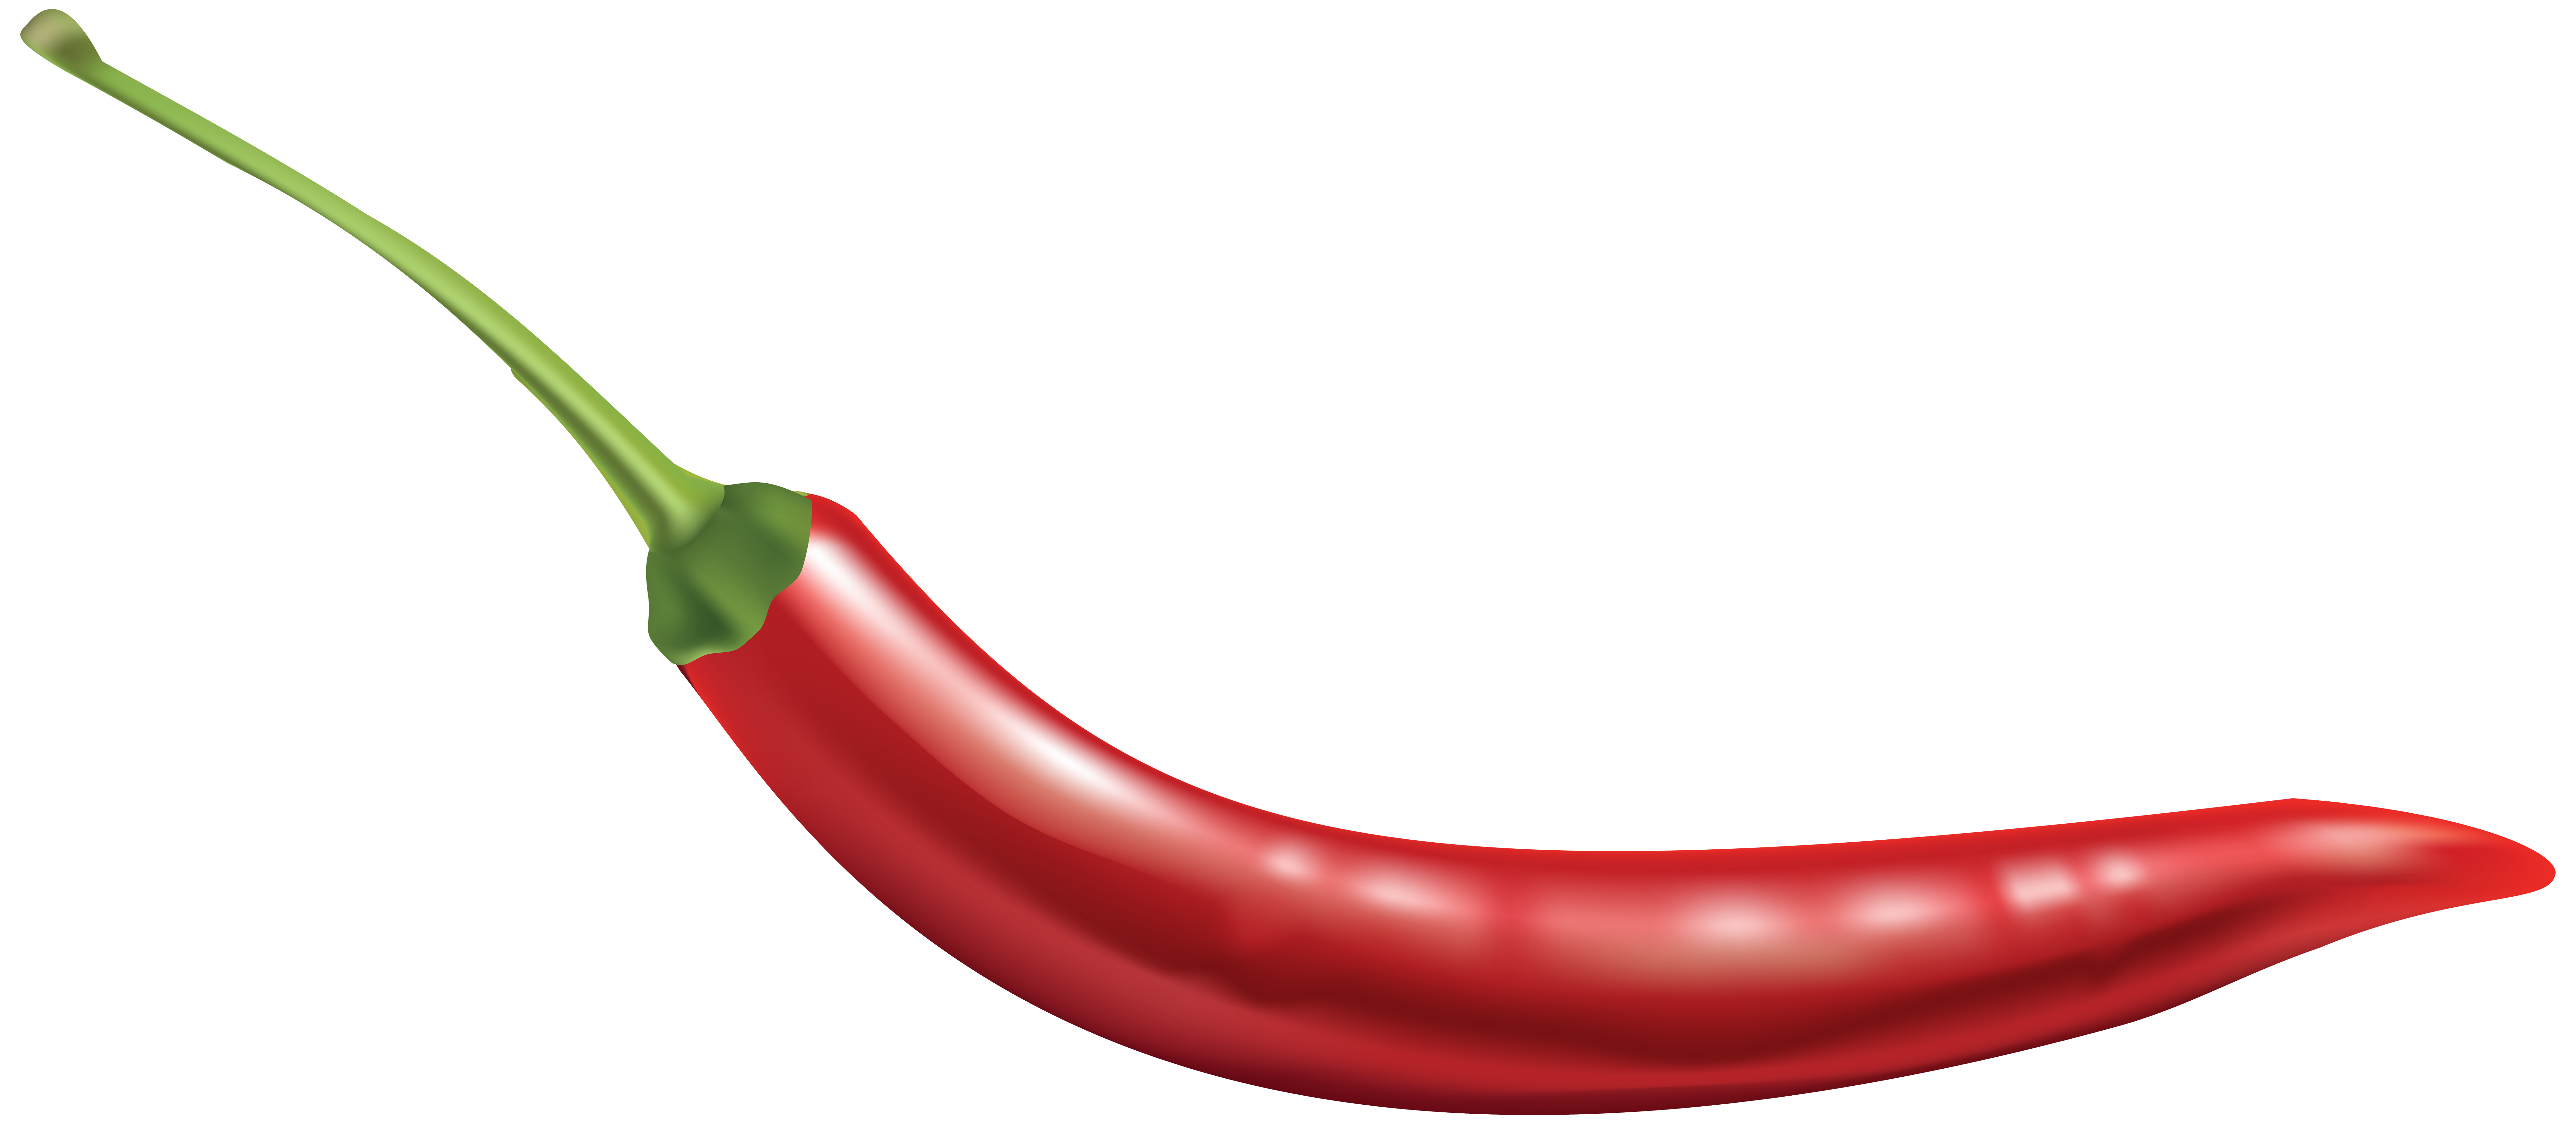 Pepper transparent clipart. Red chili free png